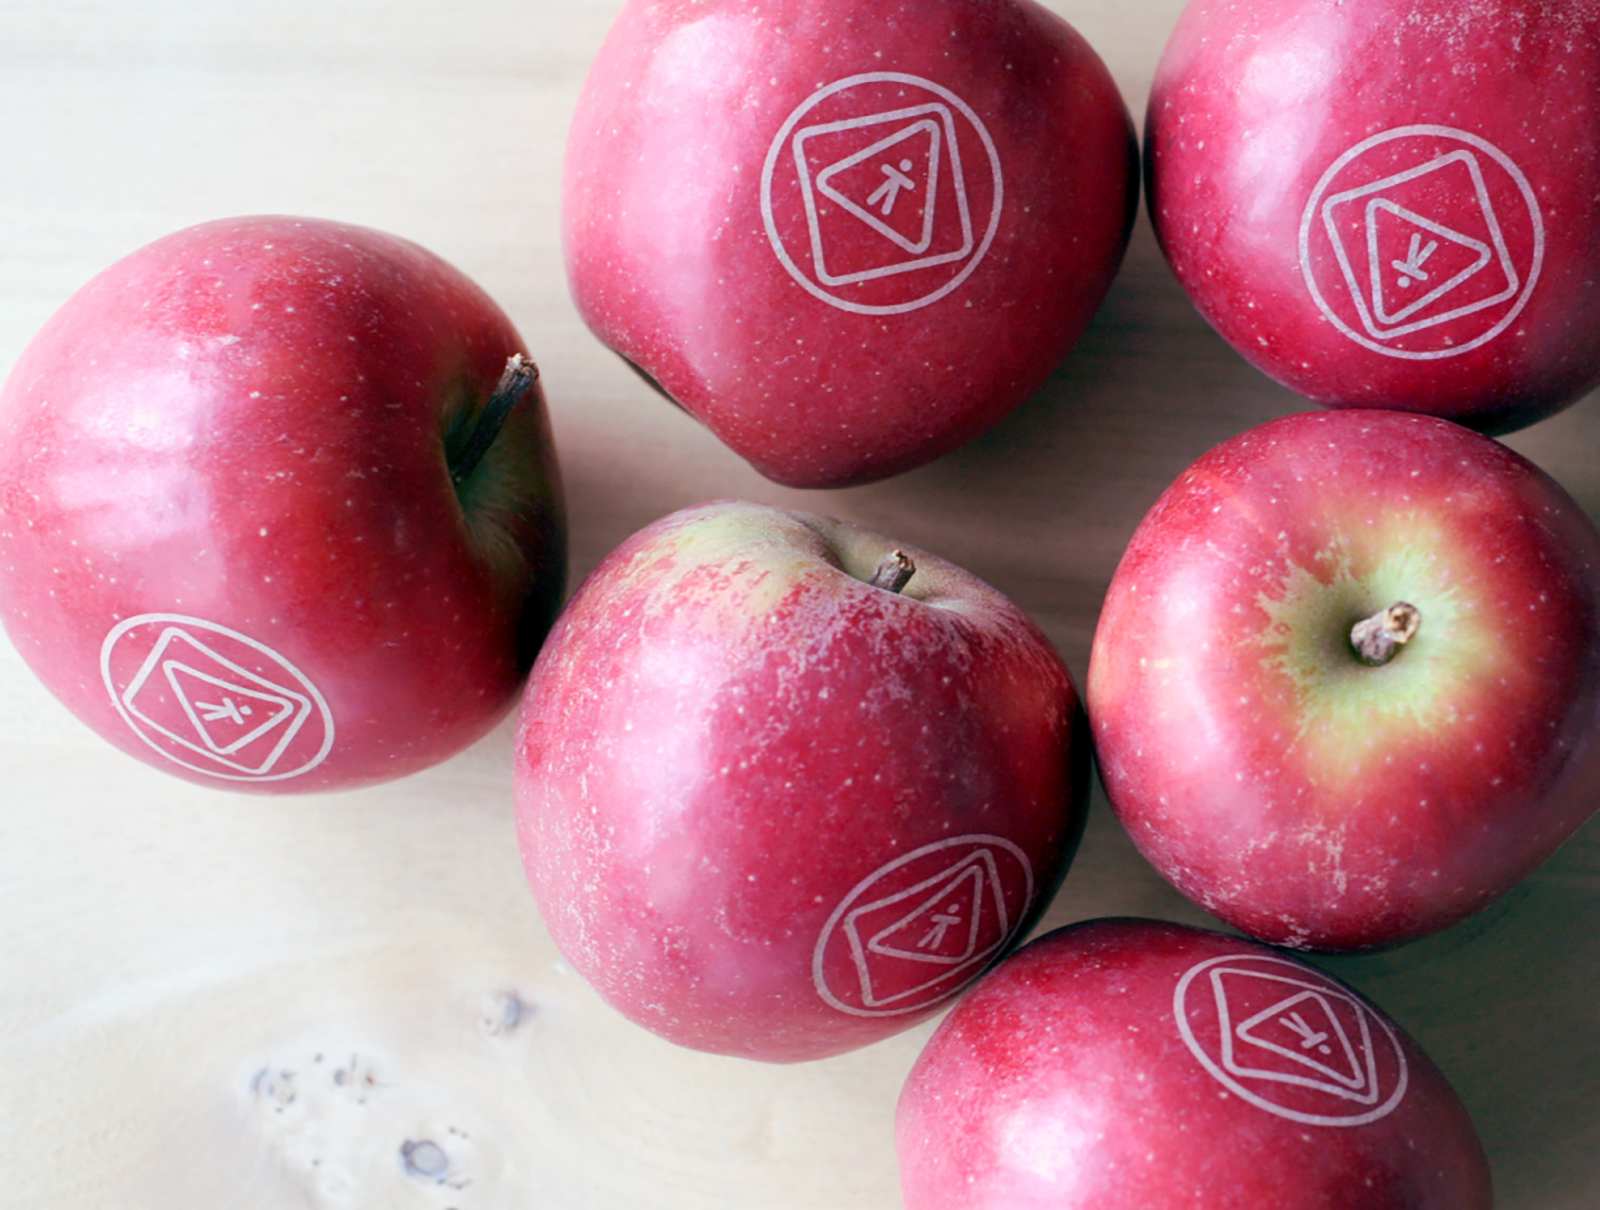 Annette_Jacobs_Safety_and_Health_Logo_on_Apples.jpg